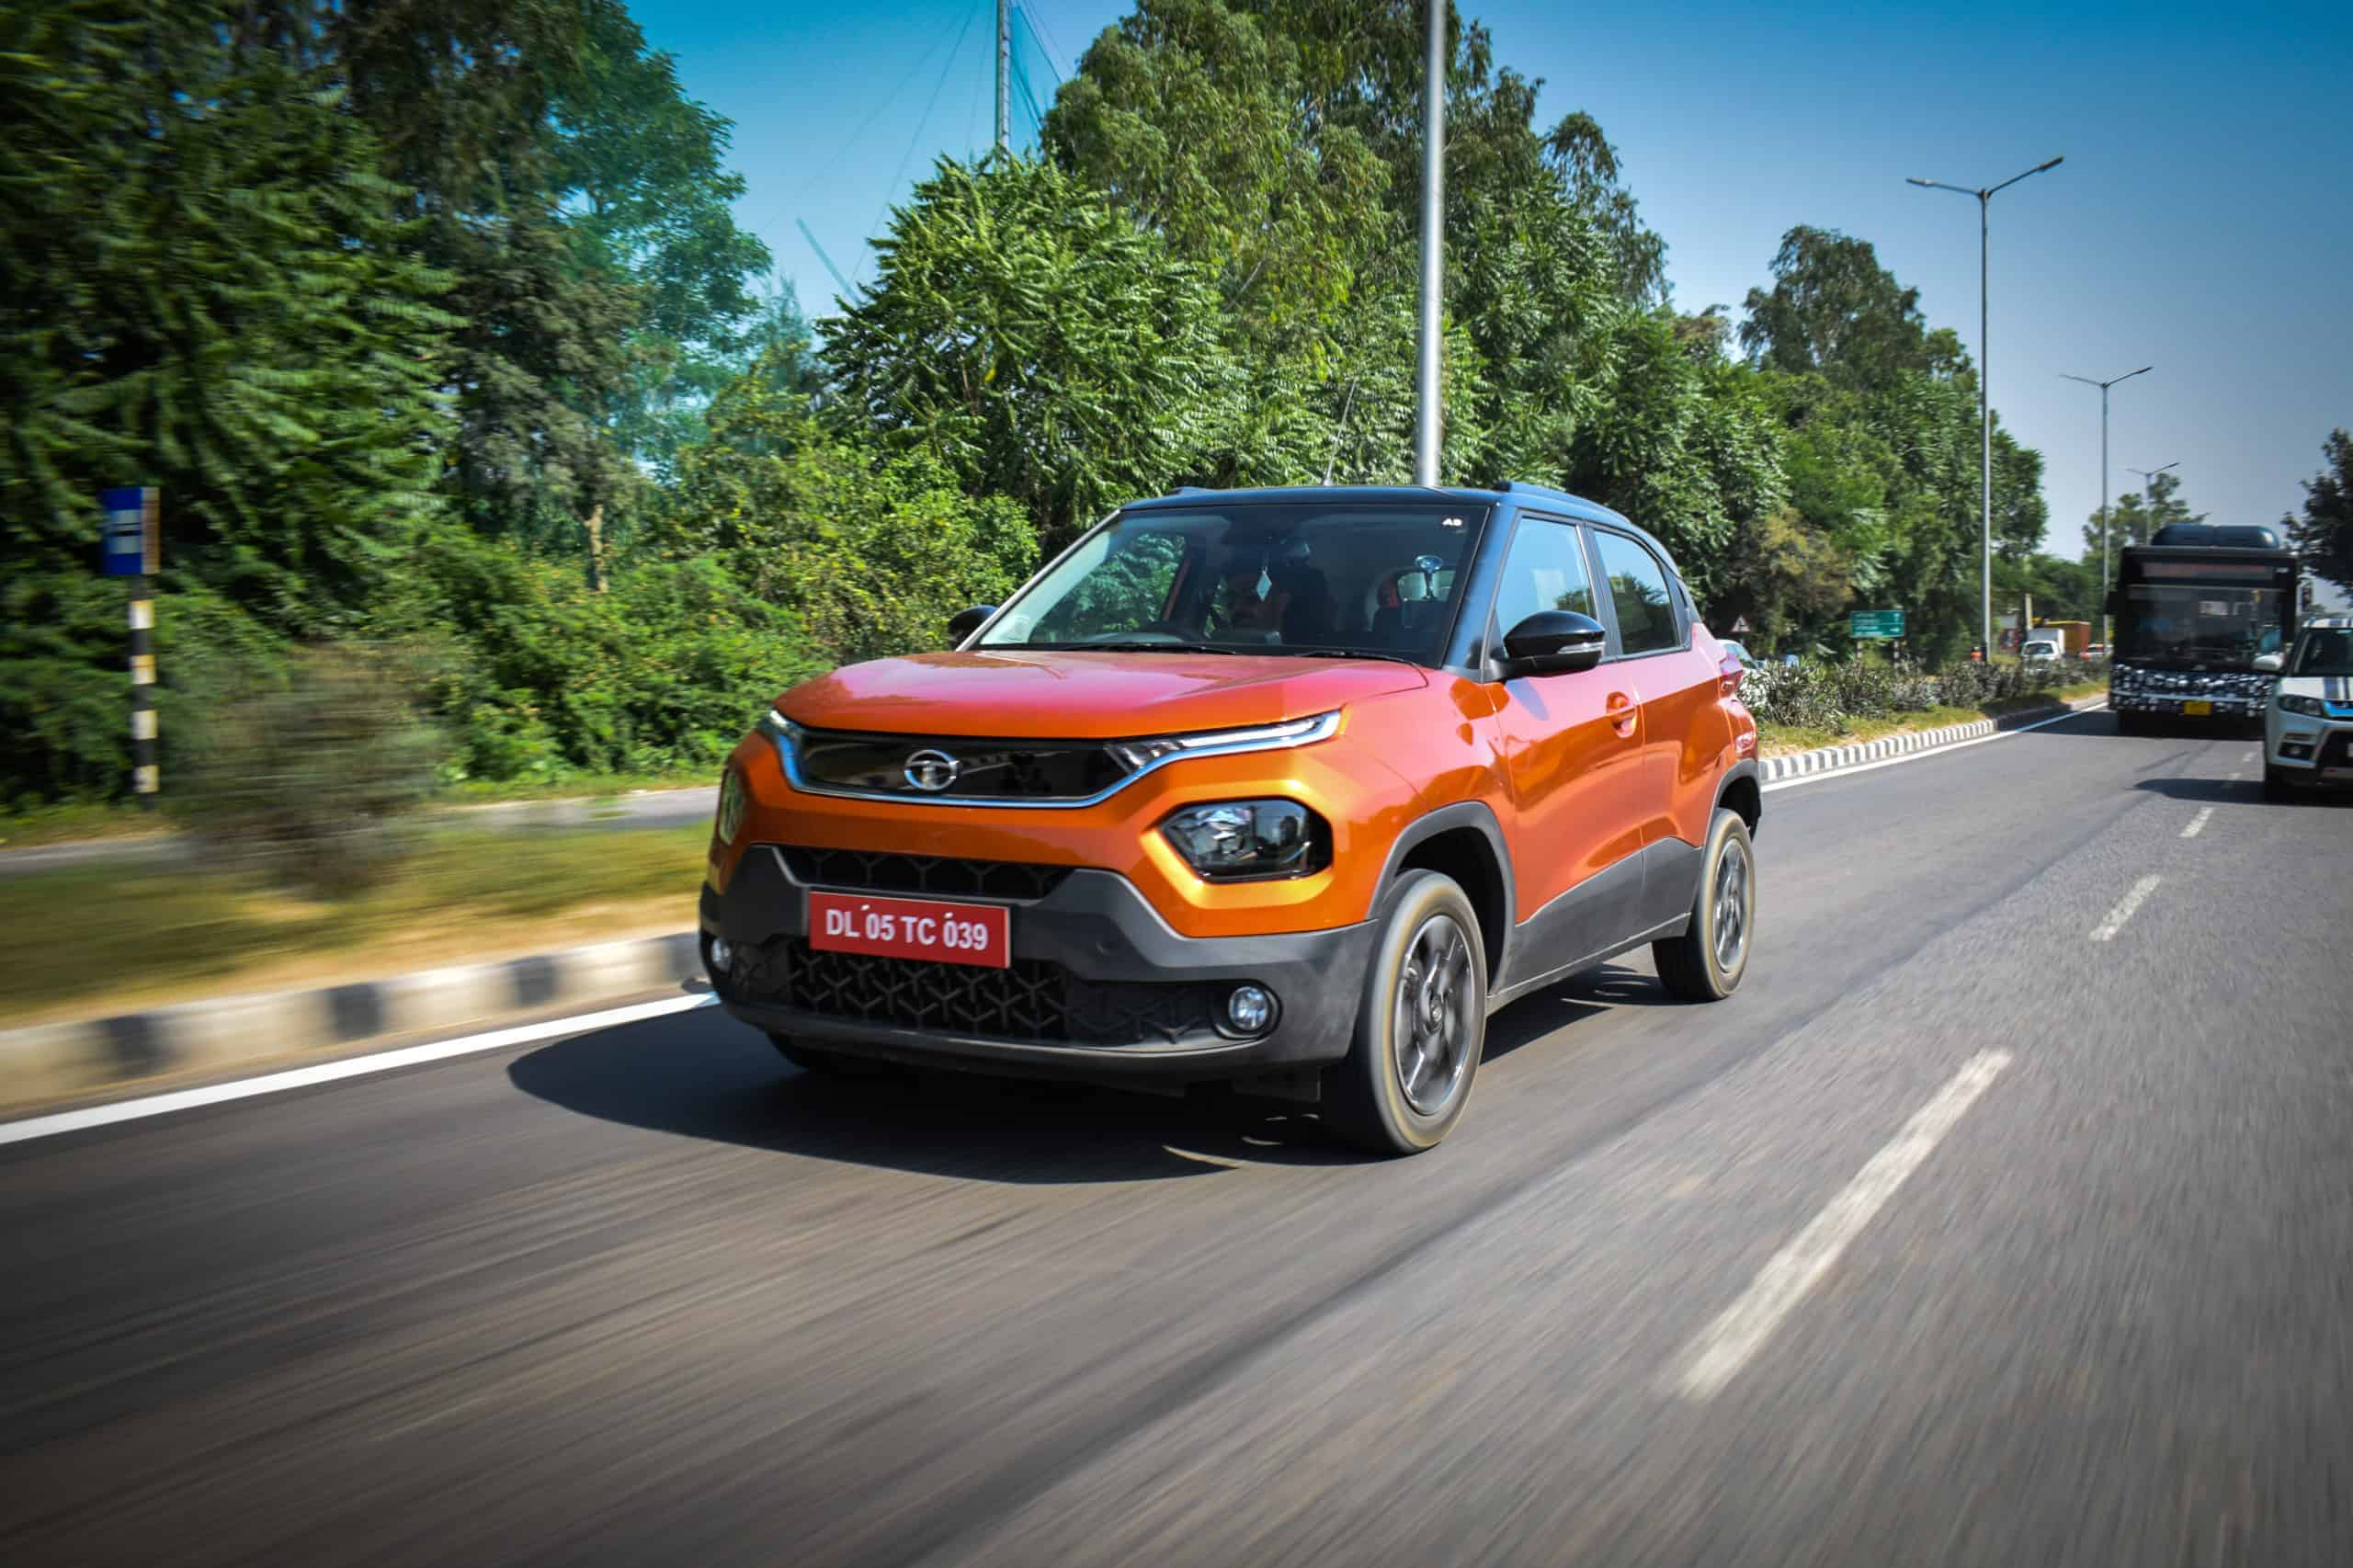 2021 Tata Punch First Drive Review - Does it Actually Pack a Punch?